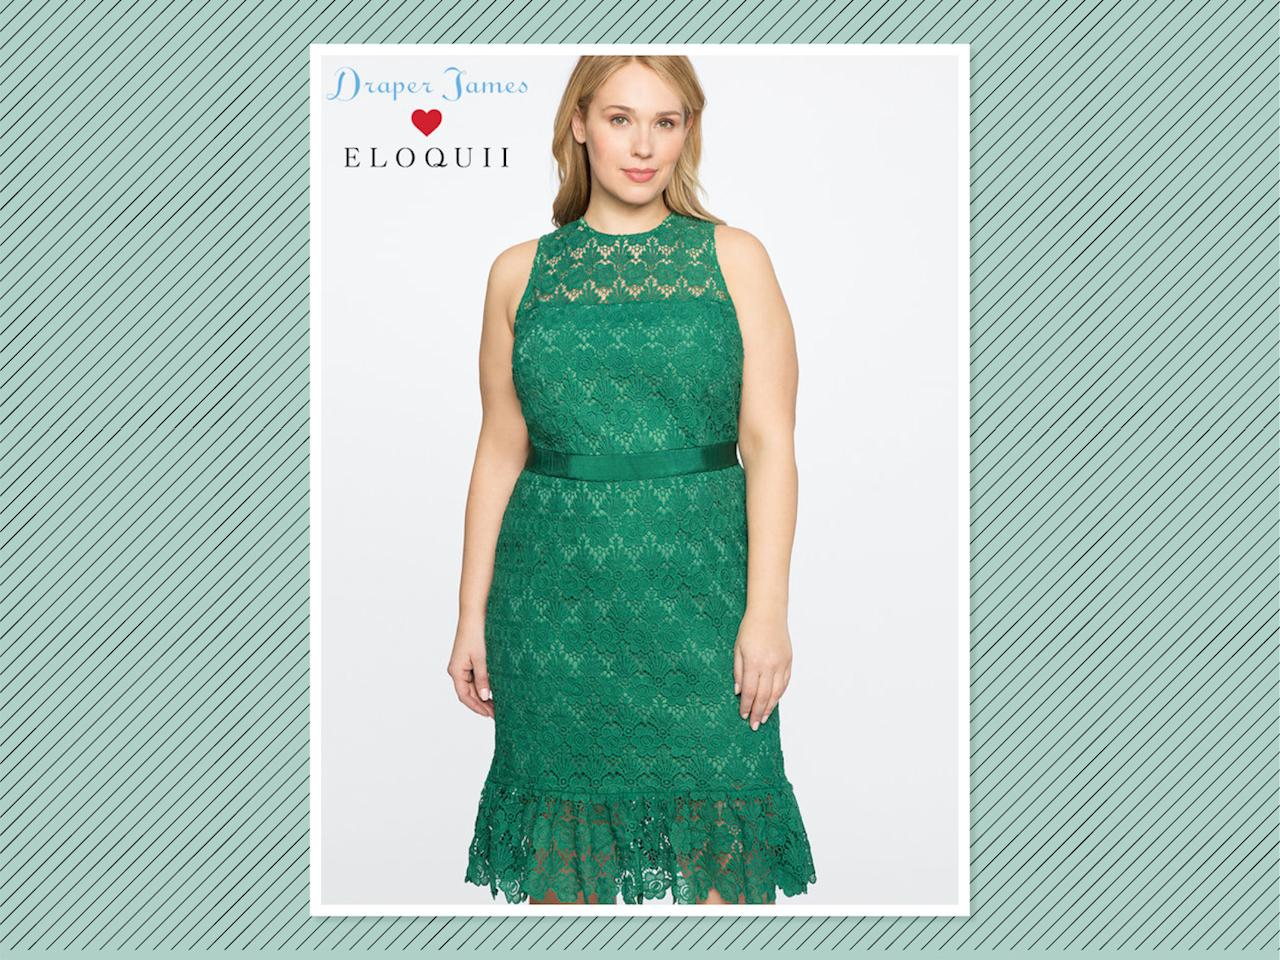 "<p>Draper James for Eloquii lace dress with sash, $195, <a rel=""nofollow"" href=""http://www.eloquii.com/draper-james-for-eloquii-lace-dress-with-sash/1226050.html?cgid=draper-james&dwvar_1226050_colorCode=22&start=10"">Eloquii</a> (Photo: Eloquii) </p>"